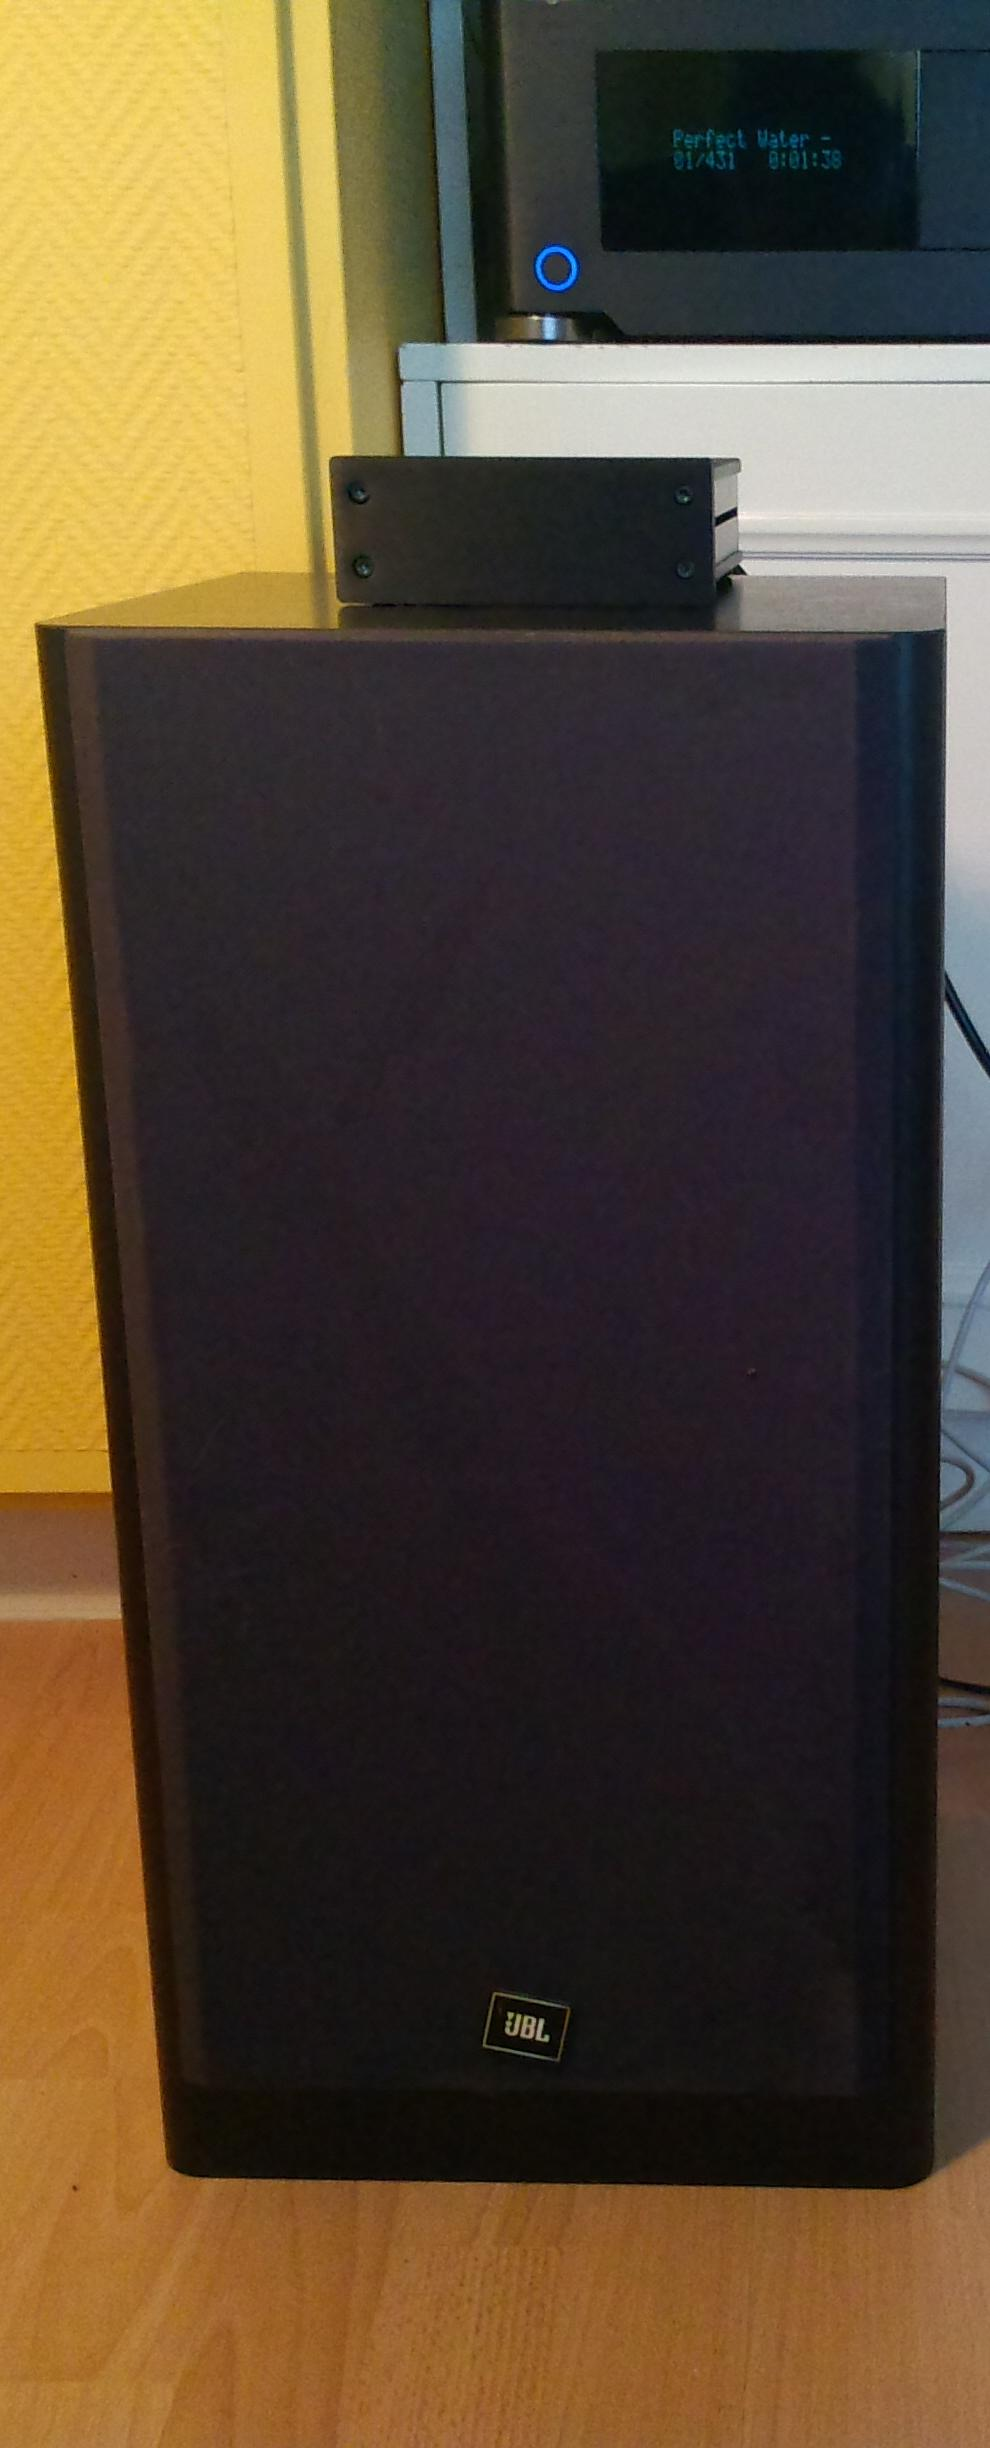 Class D Amp Photo Gallery-anaview_playing-jpg